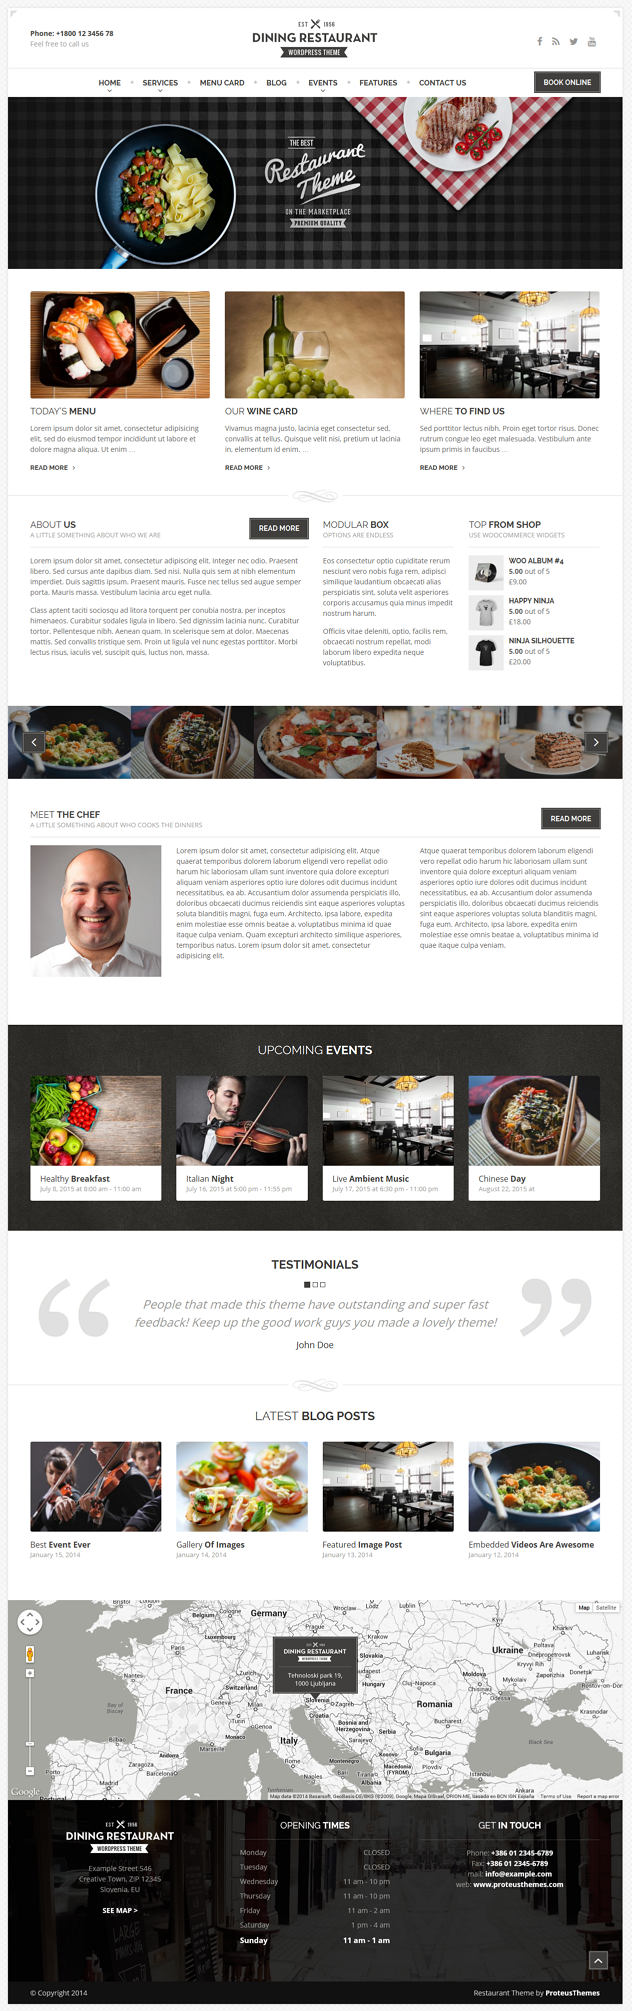 Dining Restaurant is a premium WordPress Theme for any kind of restaurant, chefs and similar bus ...